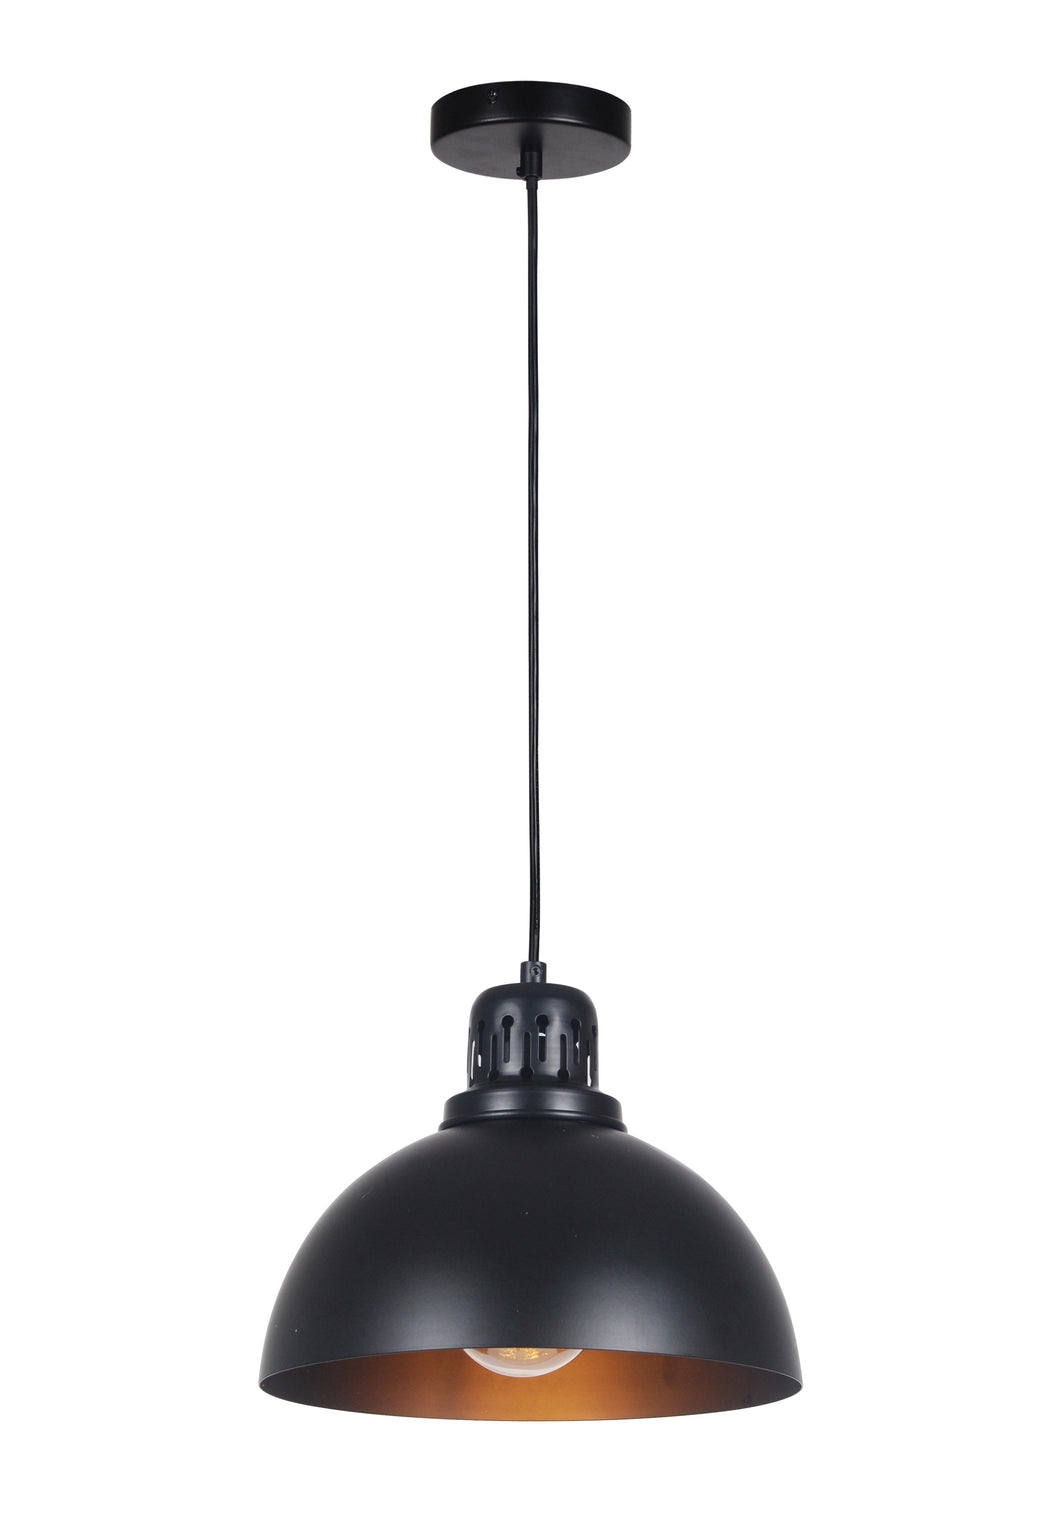 10 inch Industrial look Metal Pendant